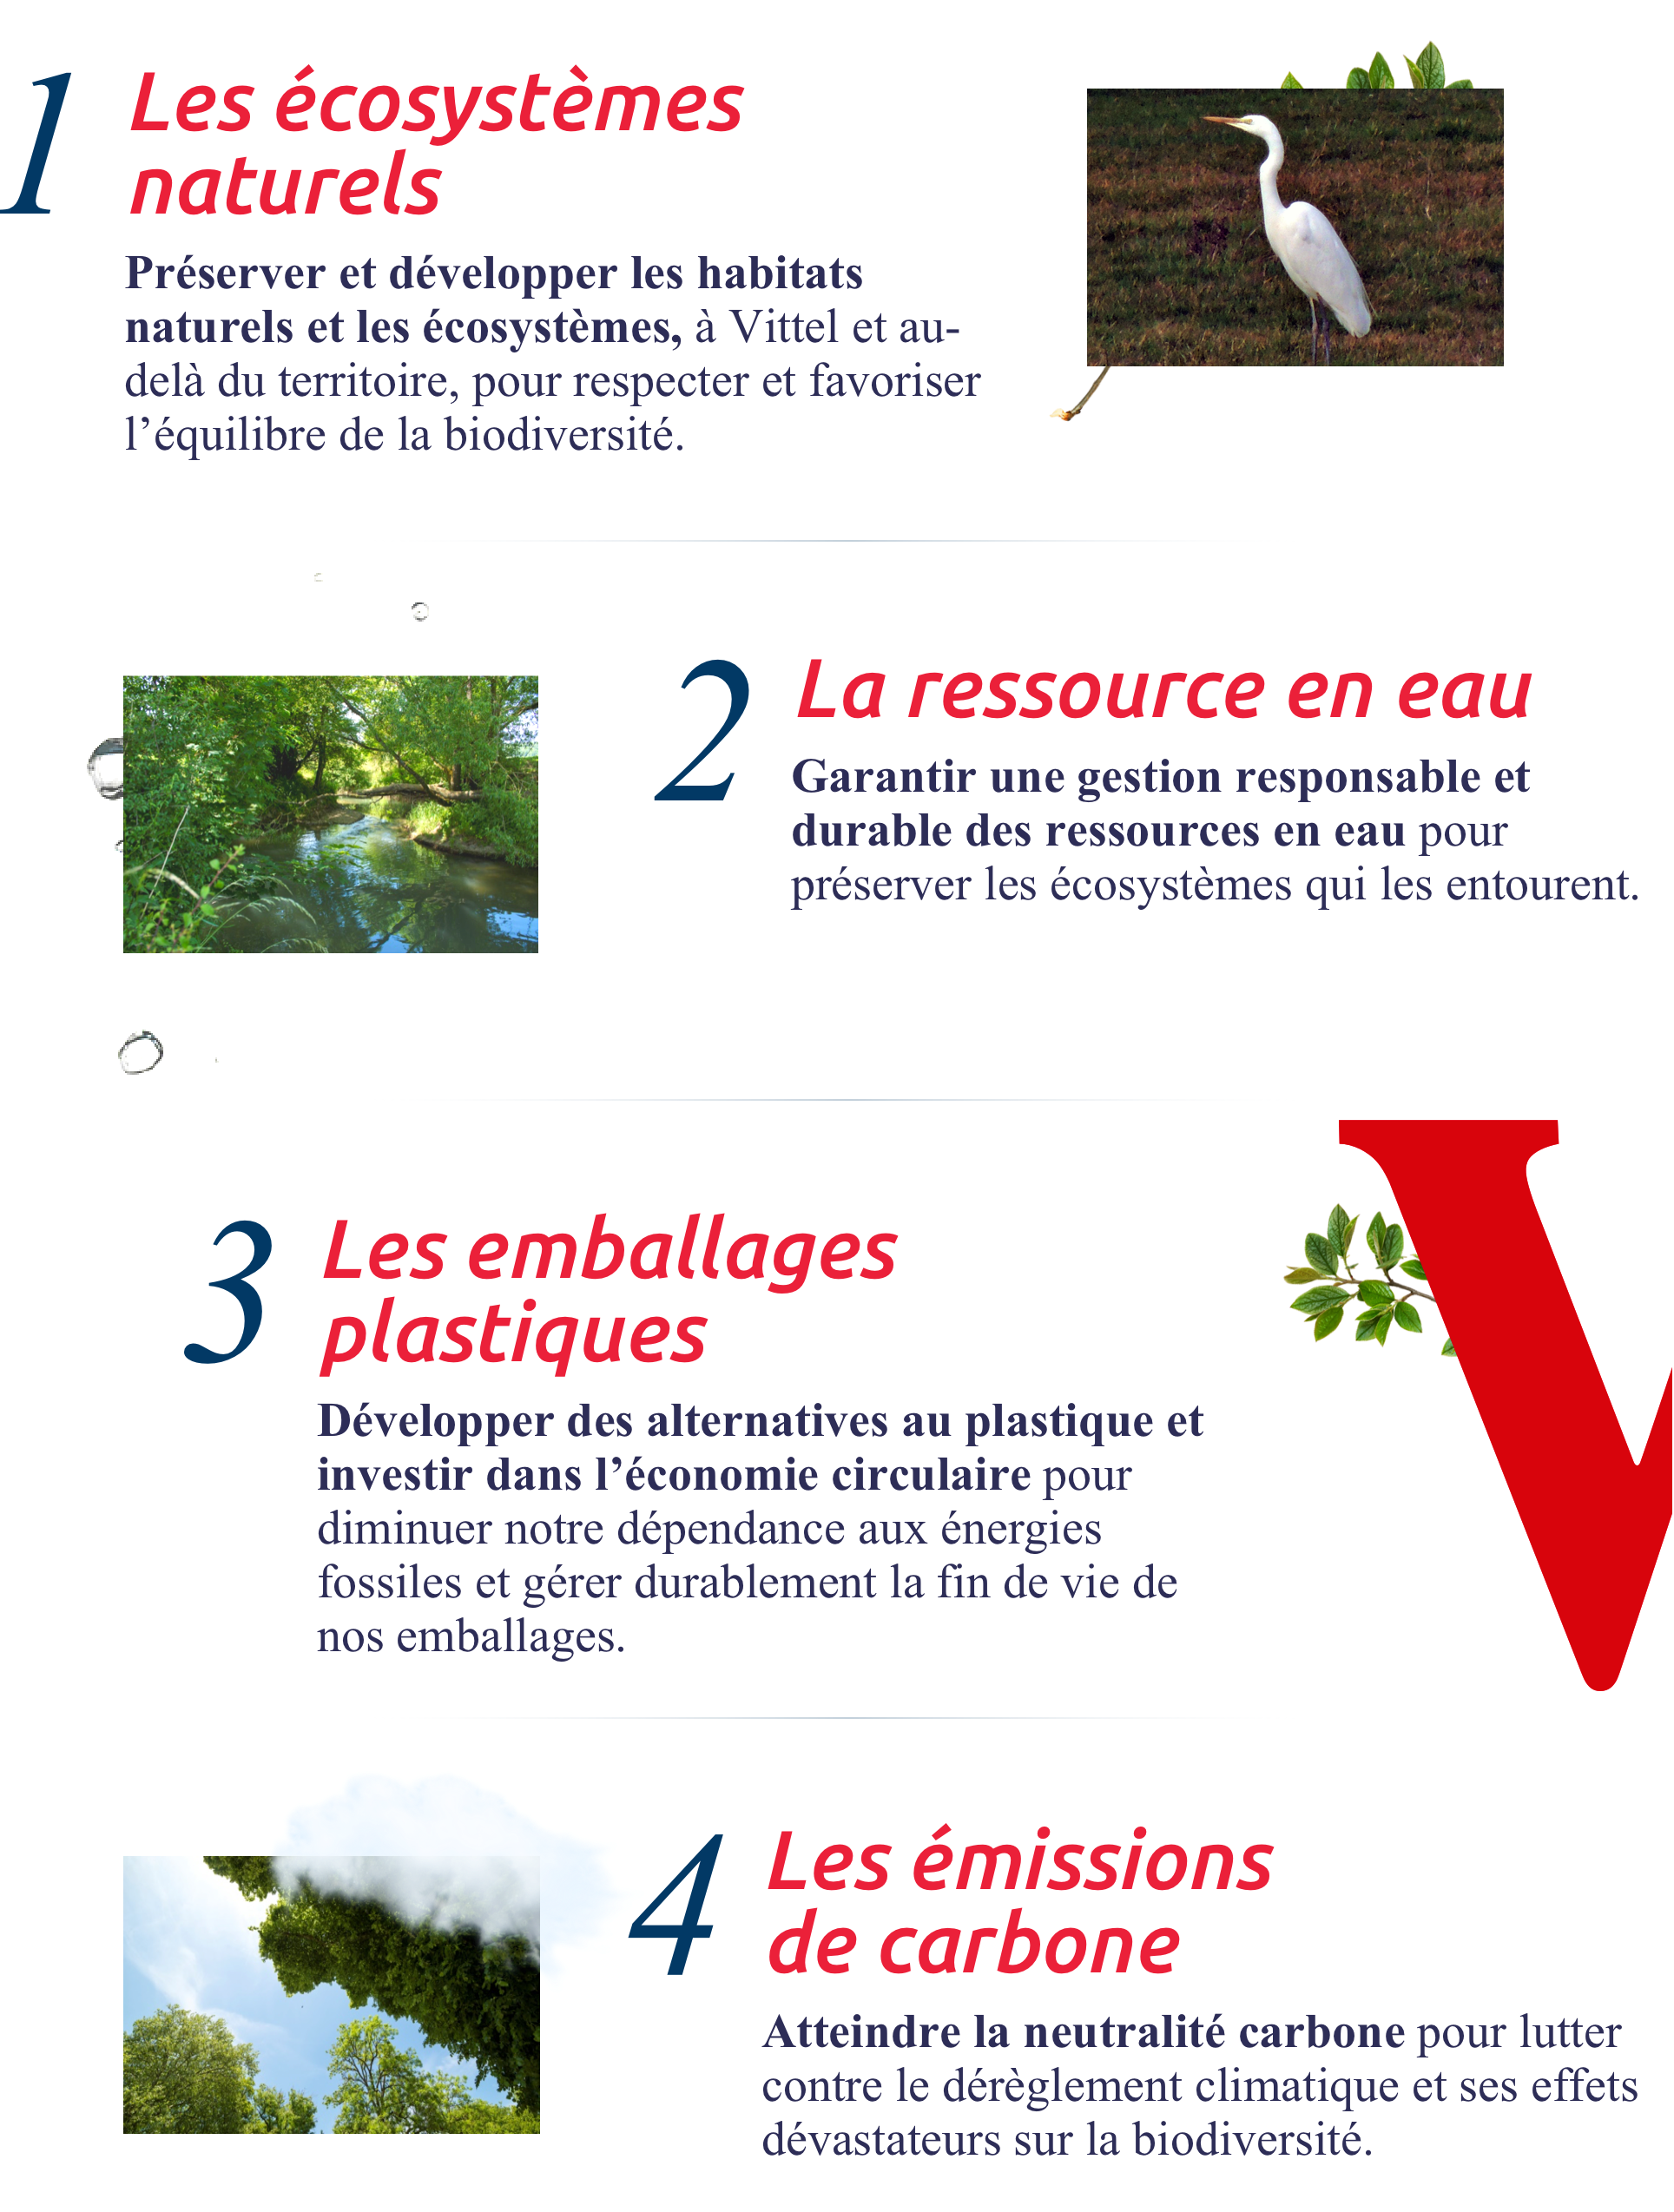 4 domaines d'actions